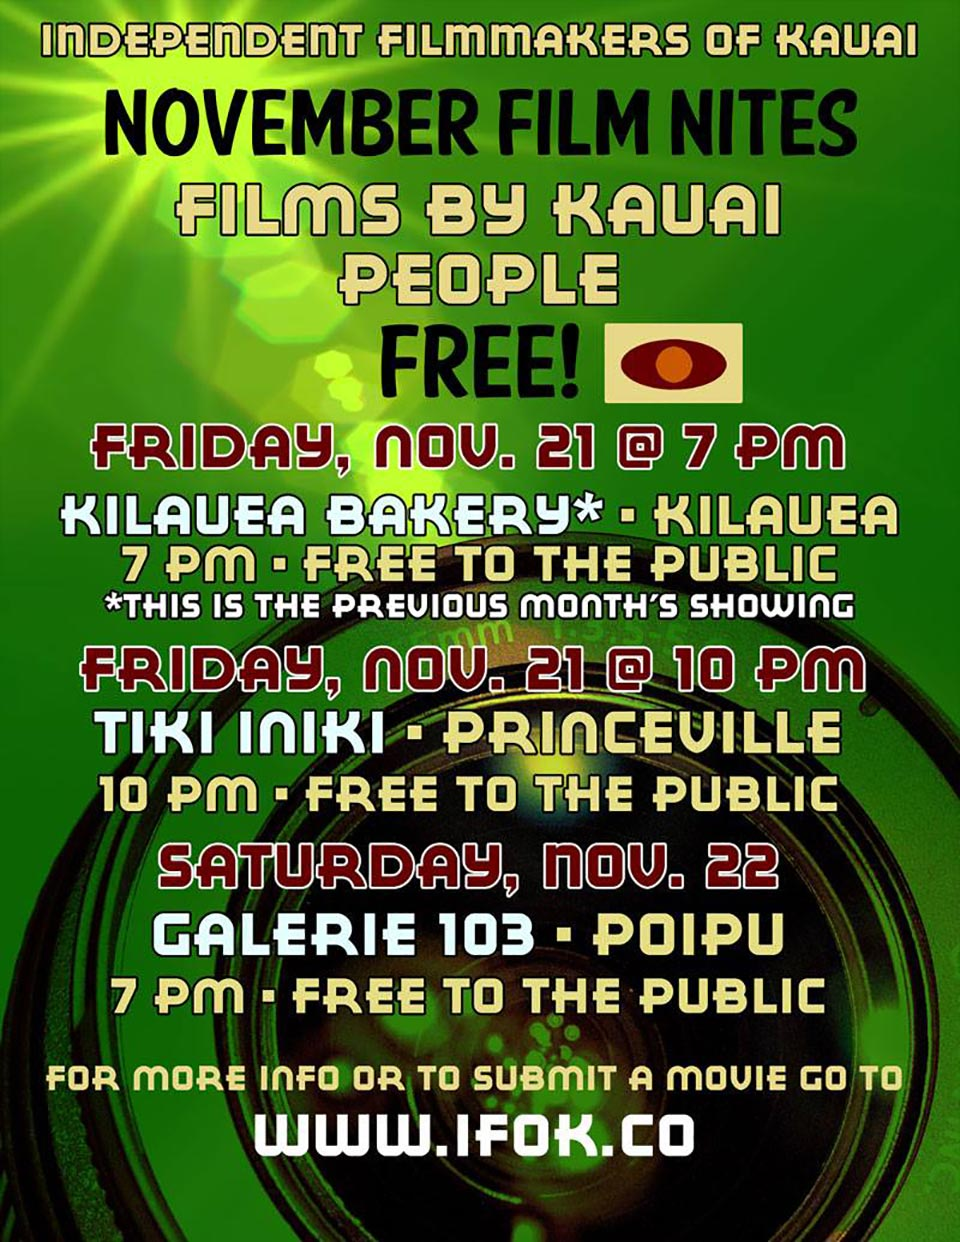 Independent Filmmakers of Kauai